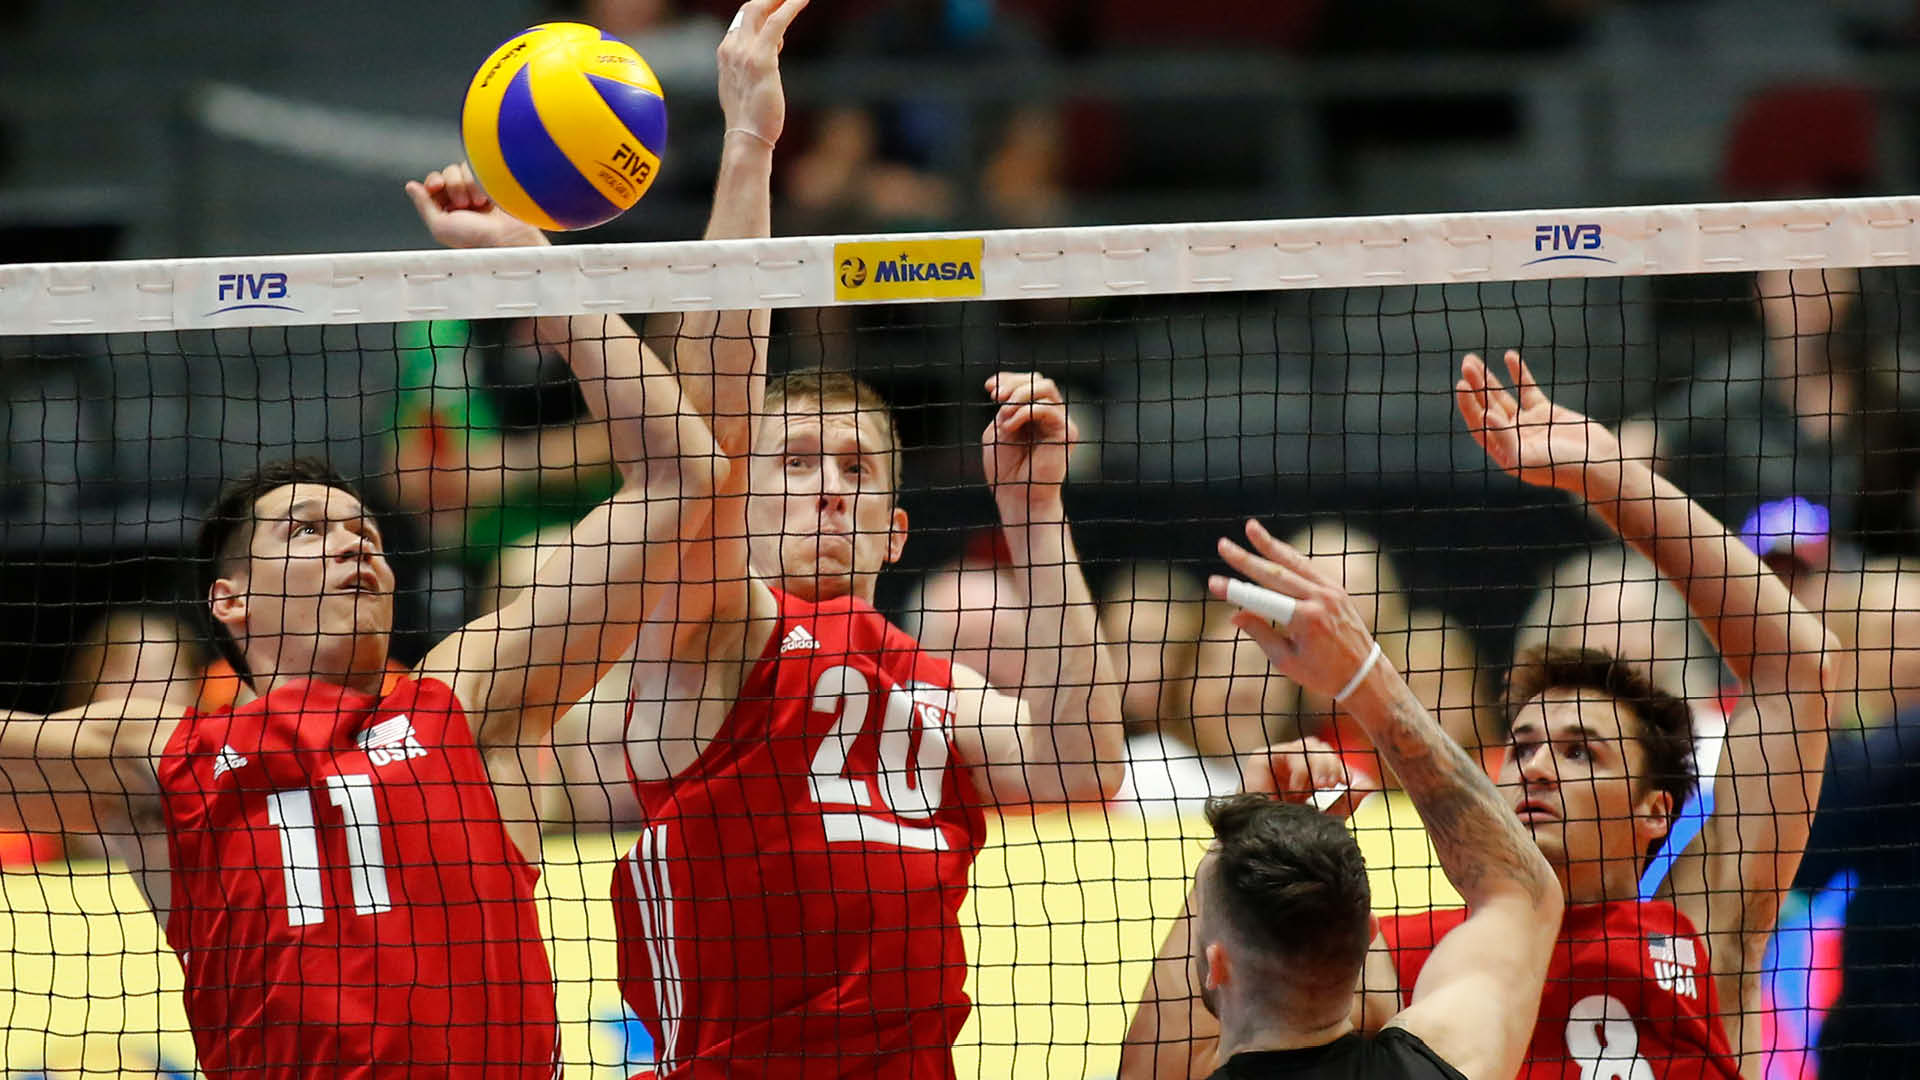 FIVB players at the net